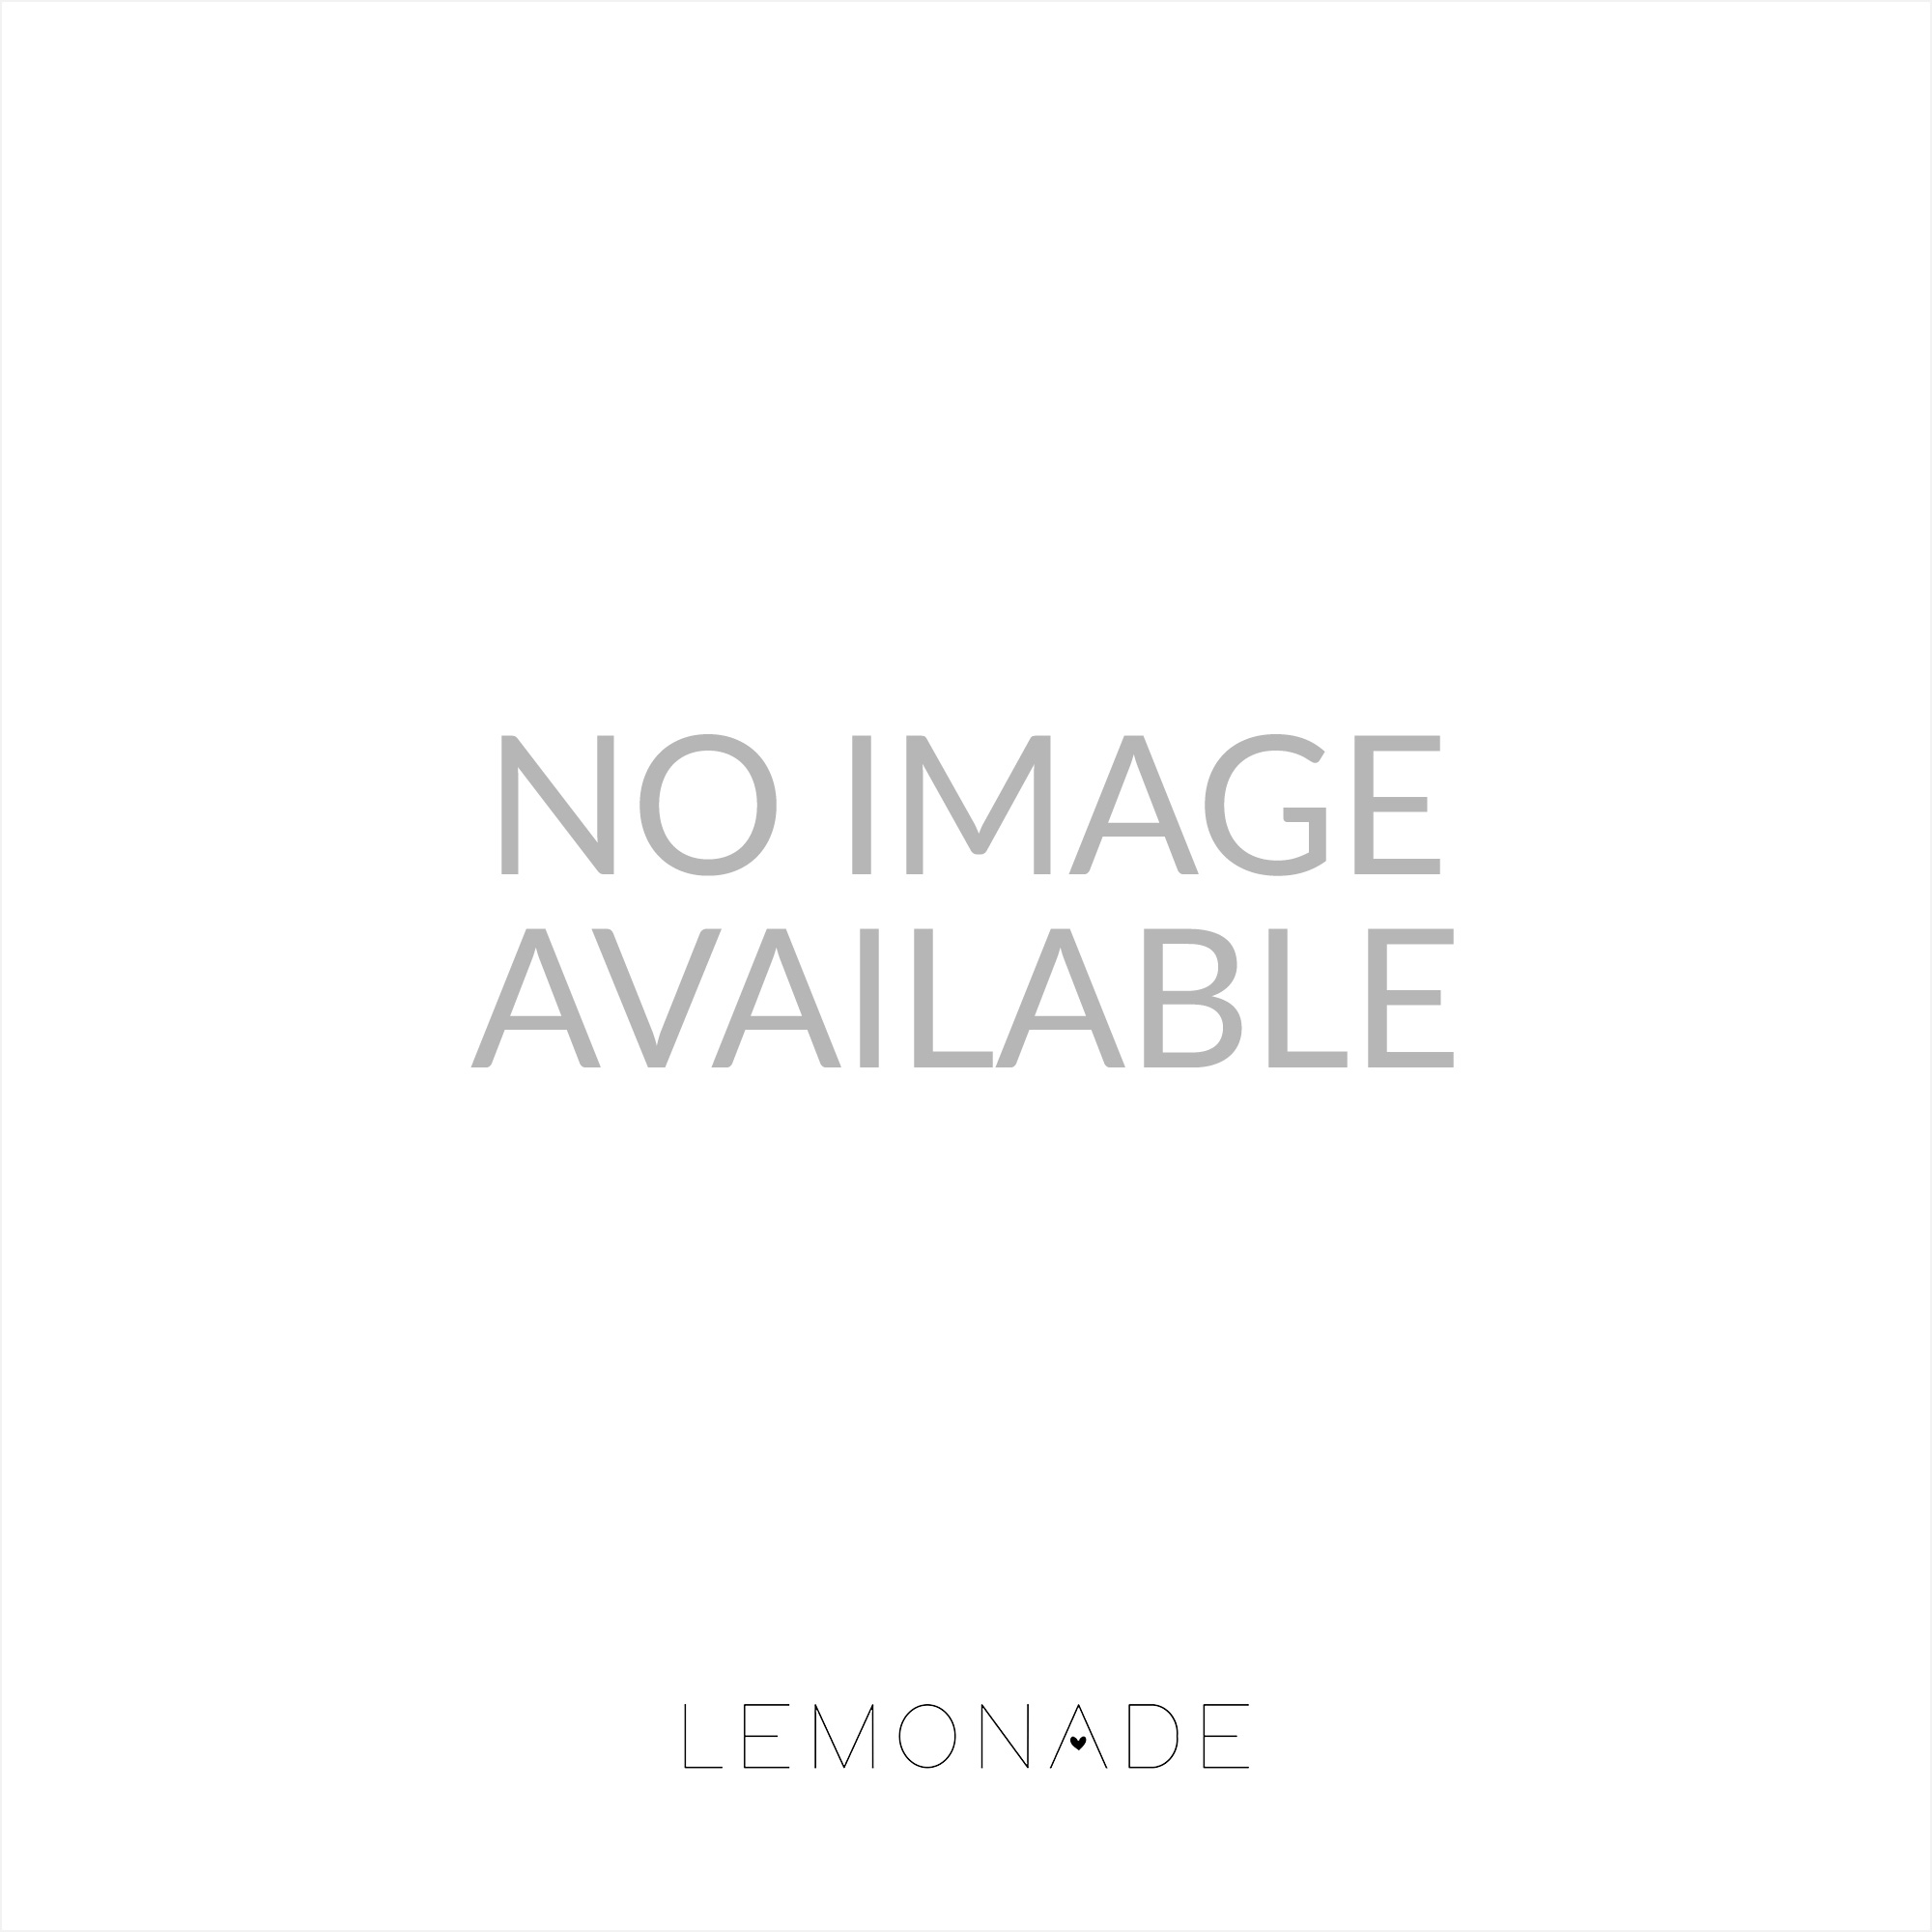 Lemonade Glitter Eyes Smokey Temptress Set of 4 - INCLUDES APPLYING GEL